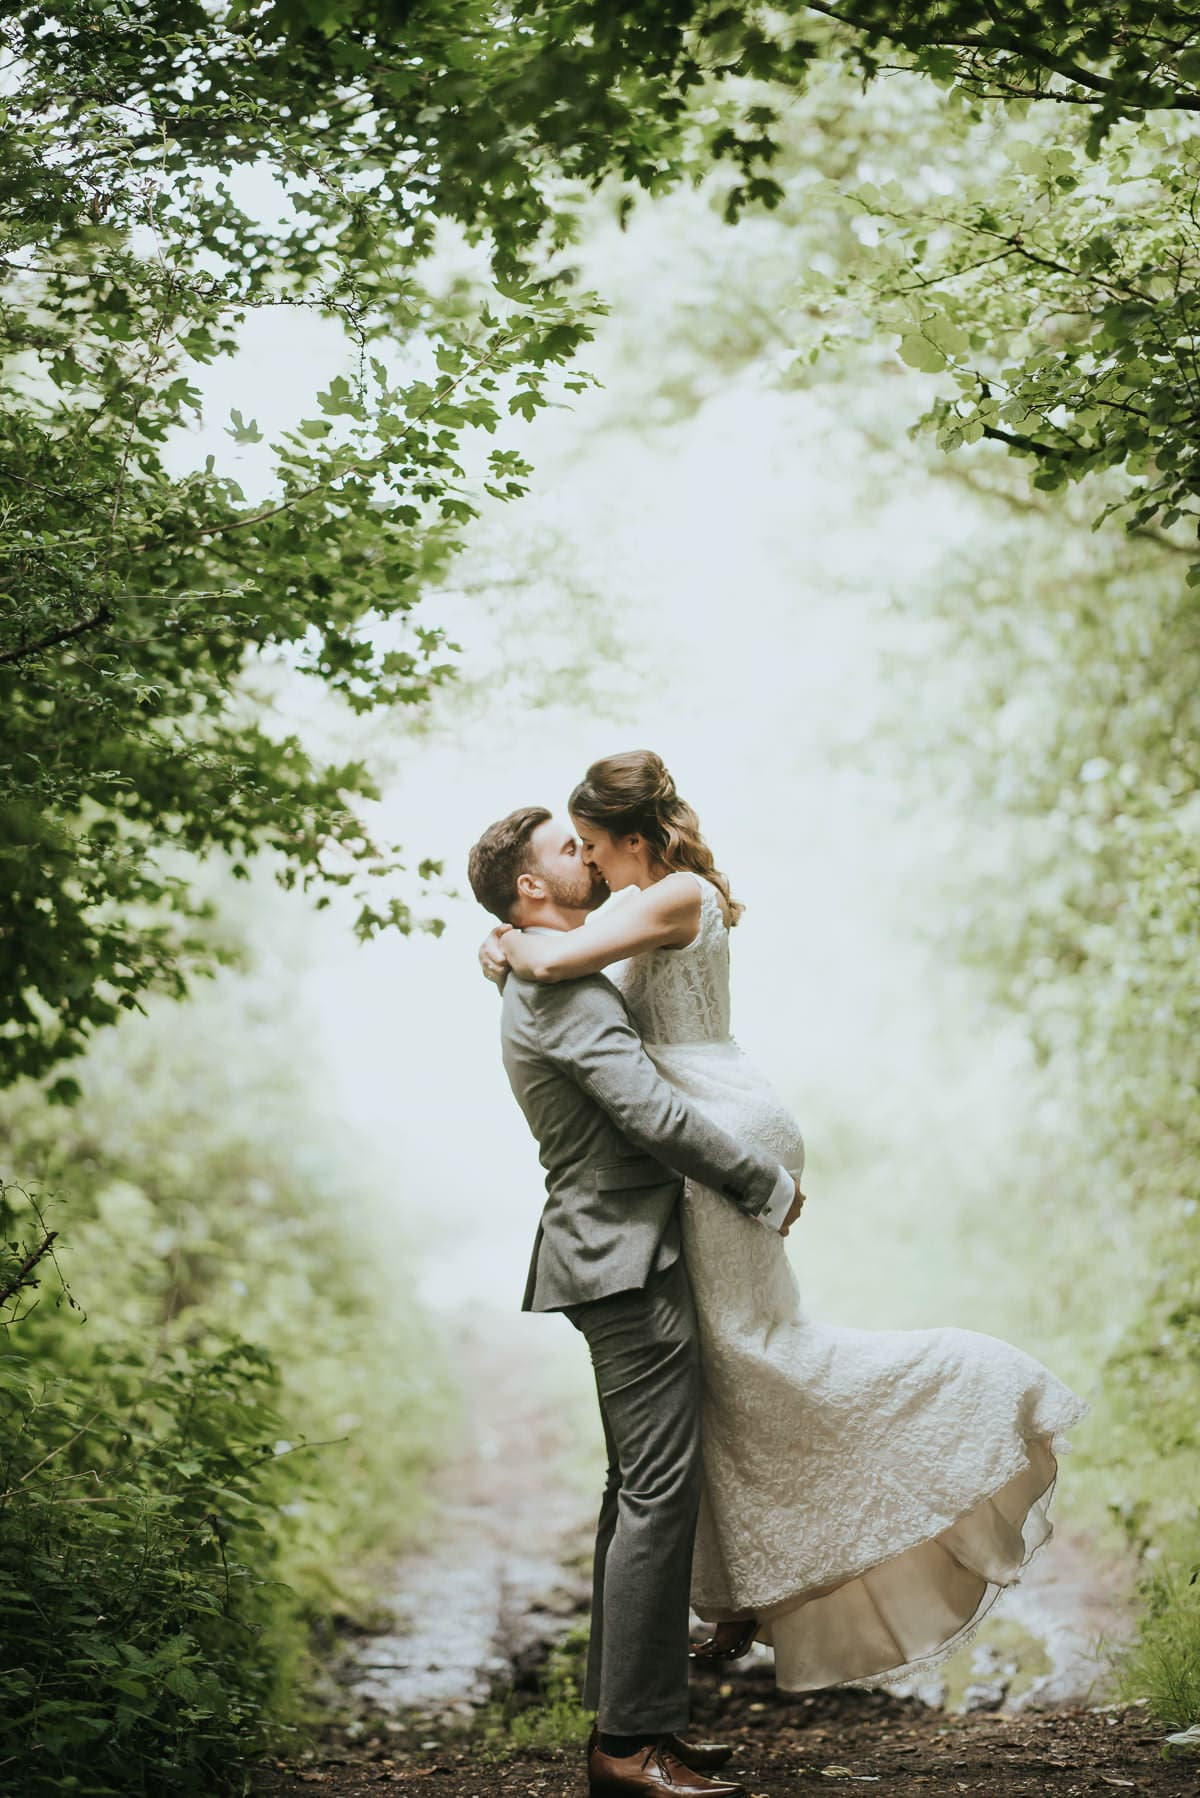 newlyweds on a forrest path in a magical light